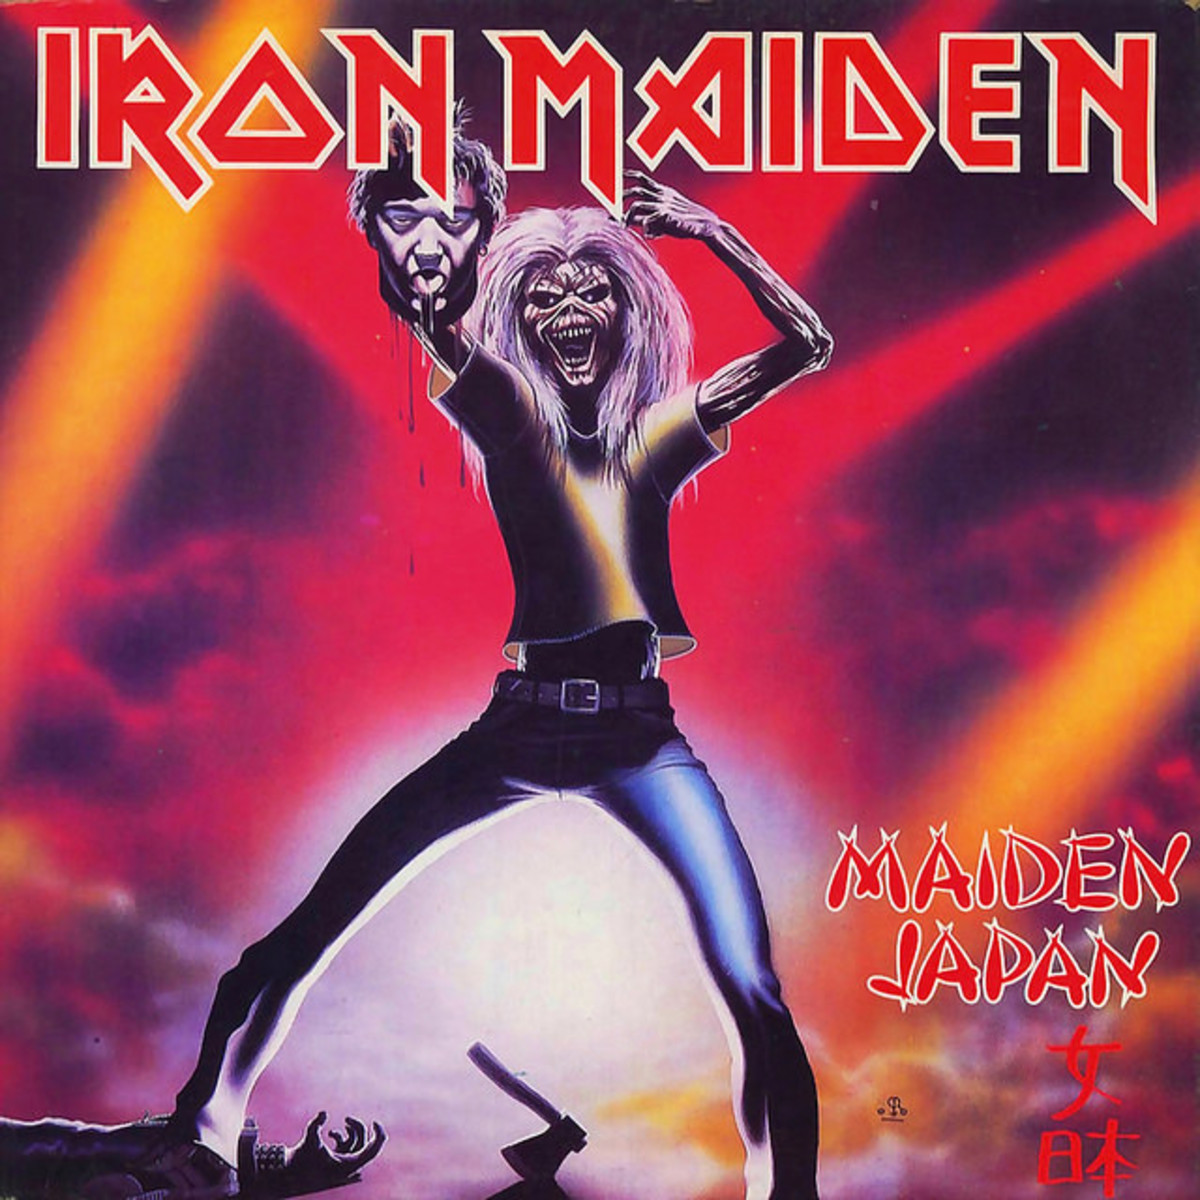 "Iron Maiden ""Maiden Japan"" 12"" Vinyl EP Un-Censored Cover (1981)  EP Cover Art by Derek Riggs"